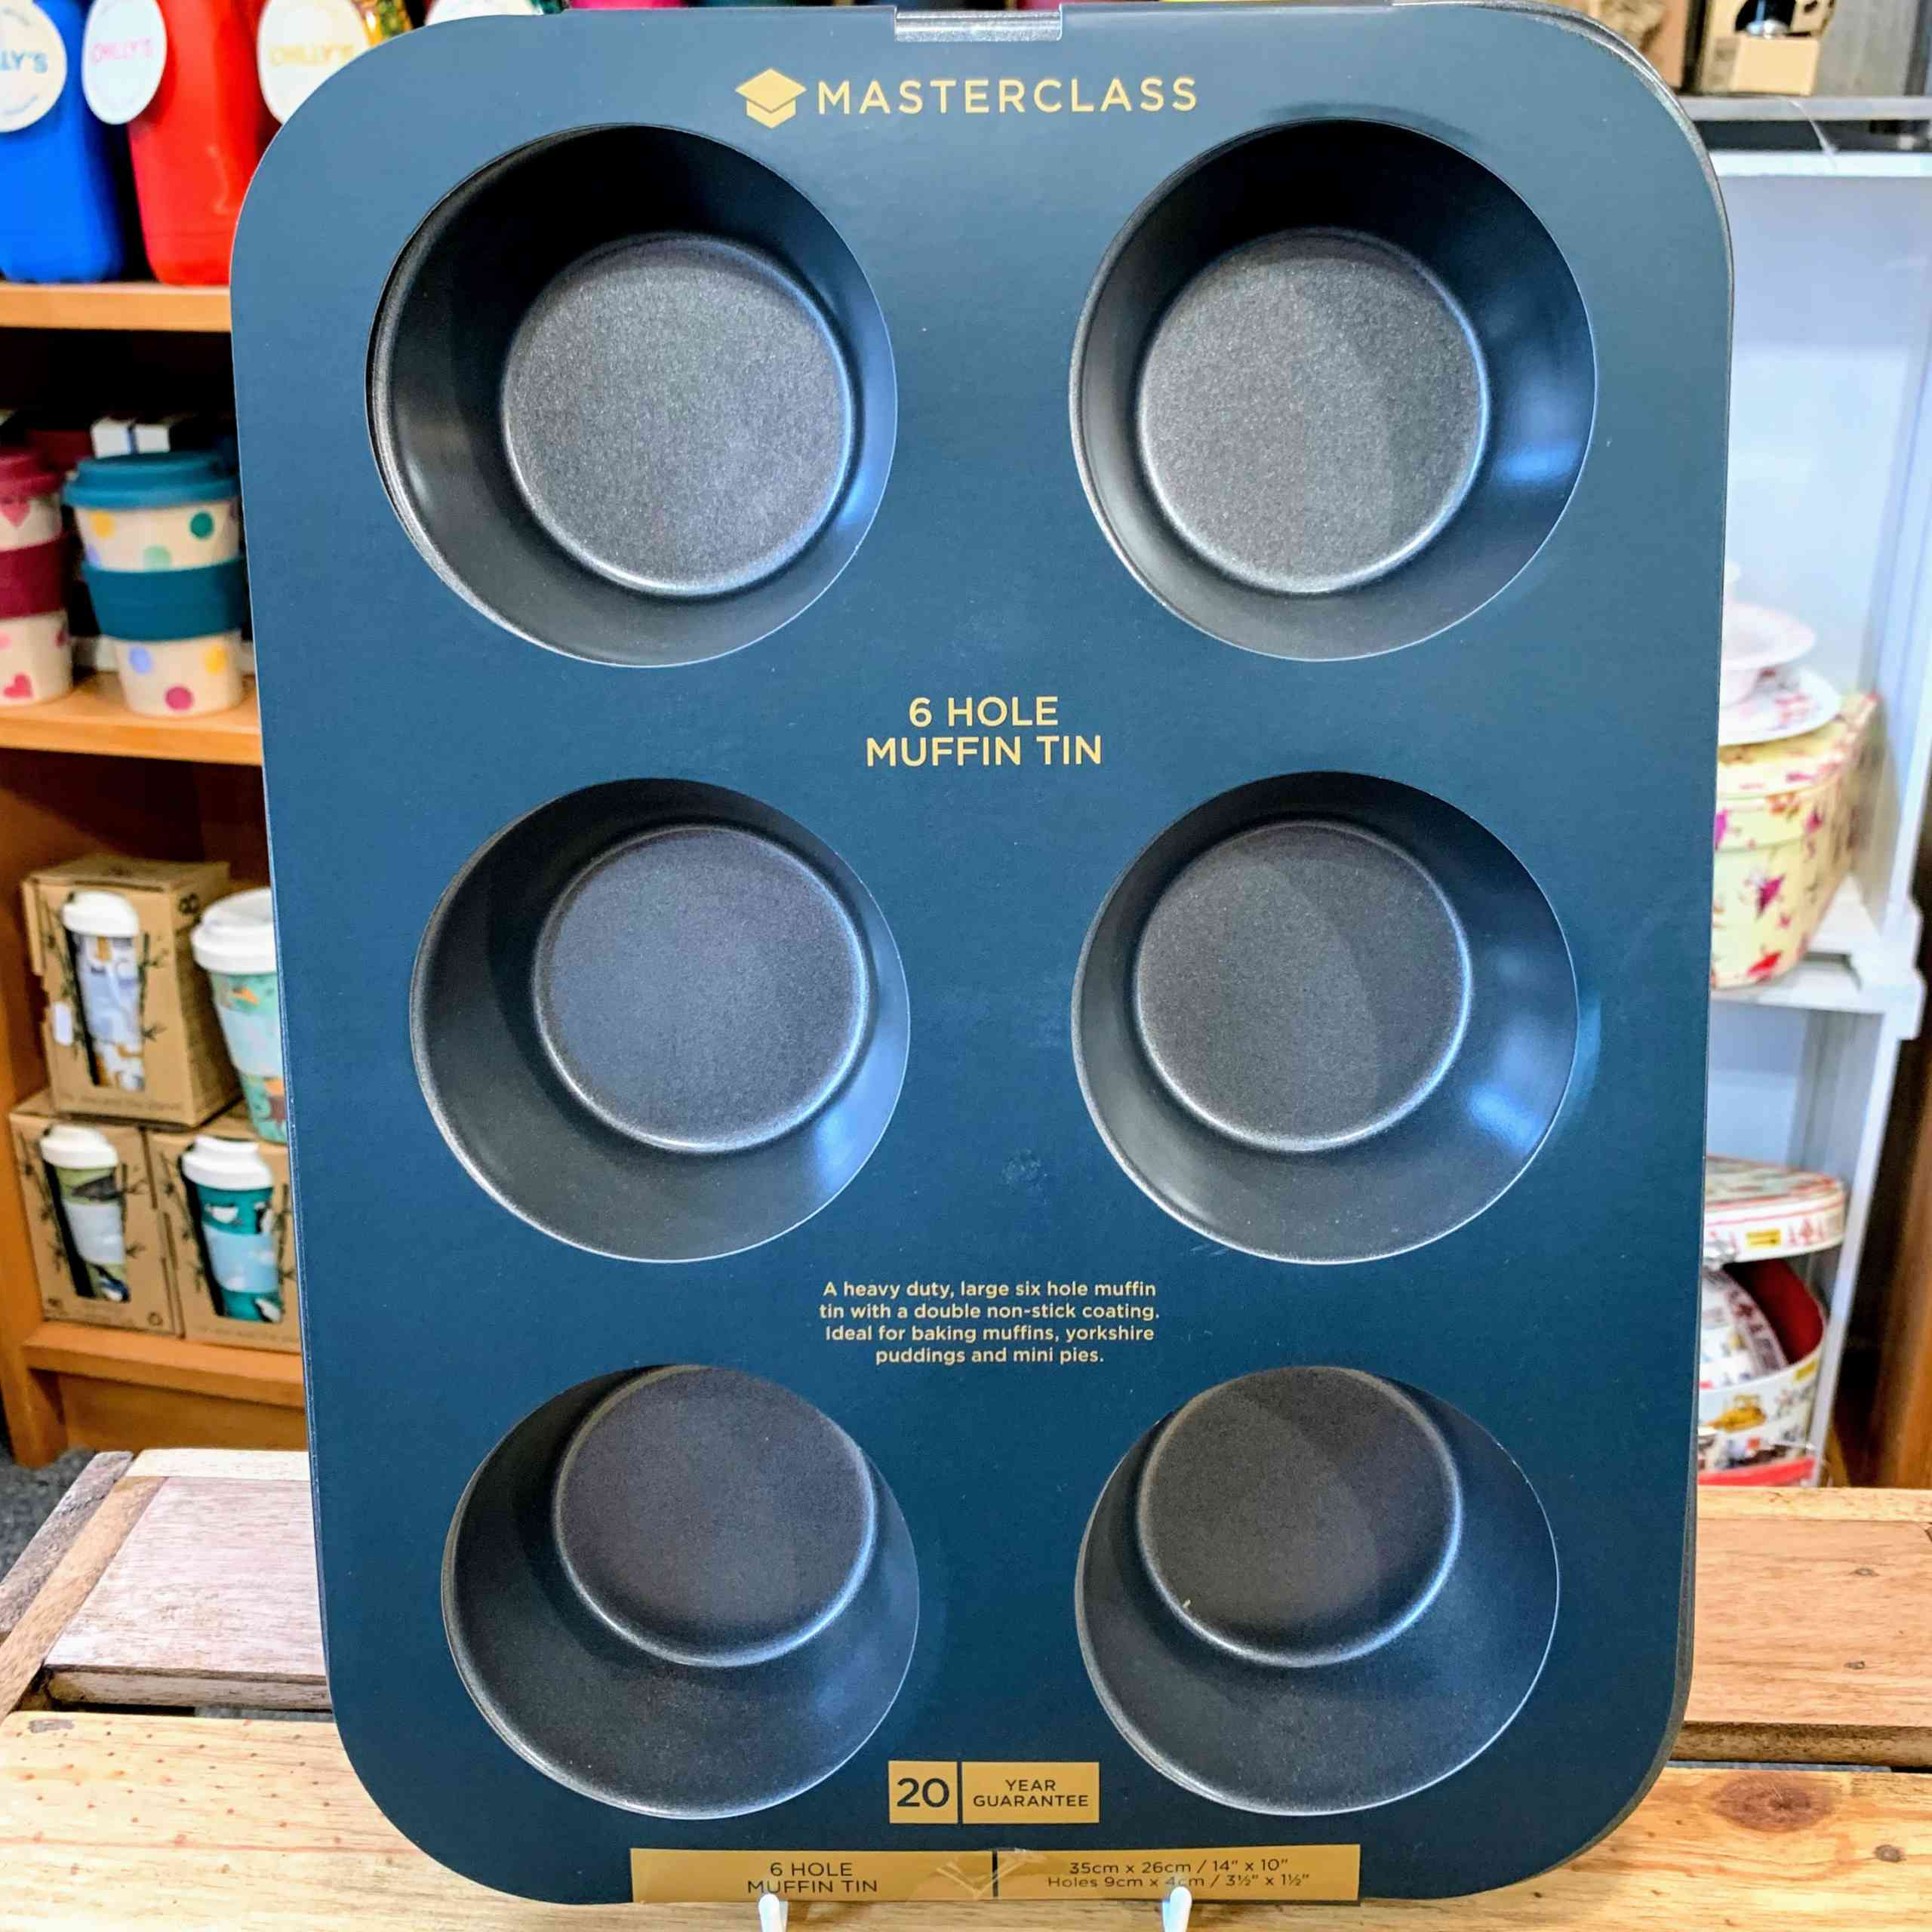 Masterclass 6 Hole Muffin Tin